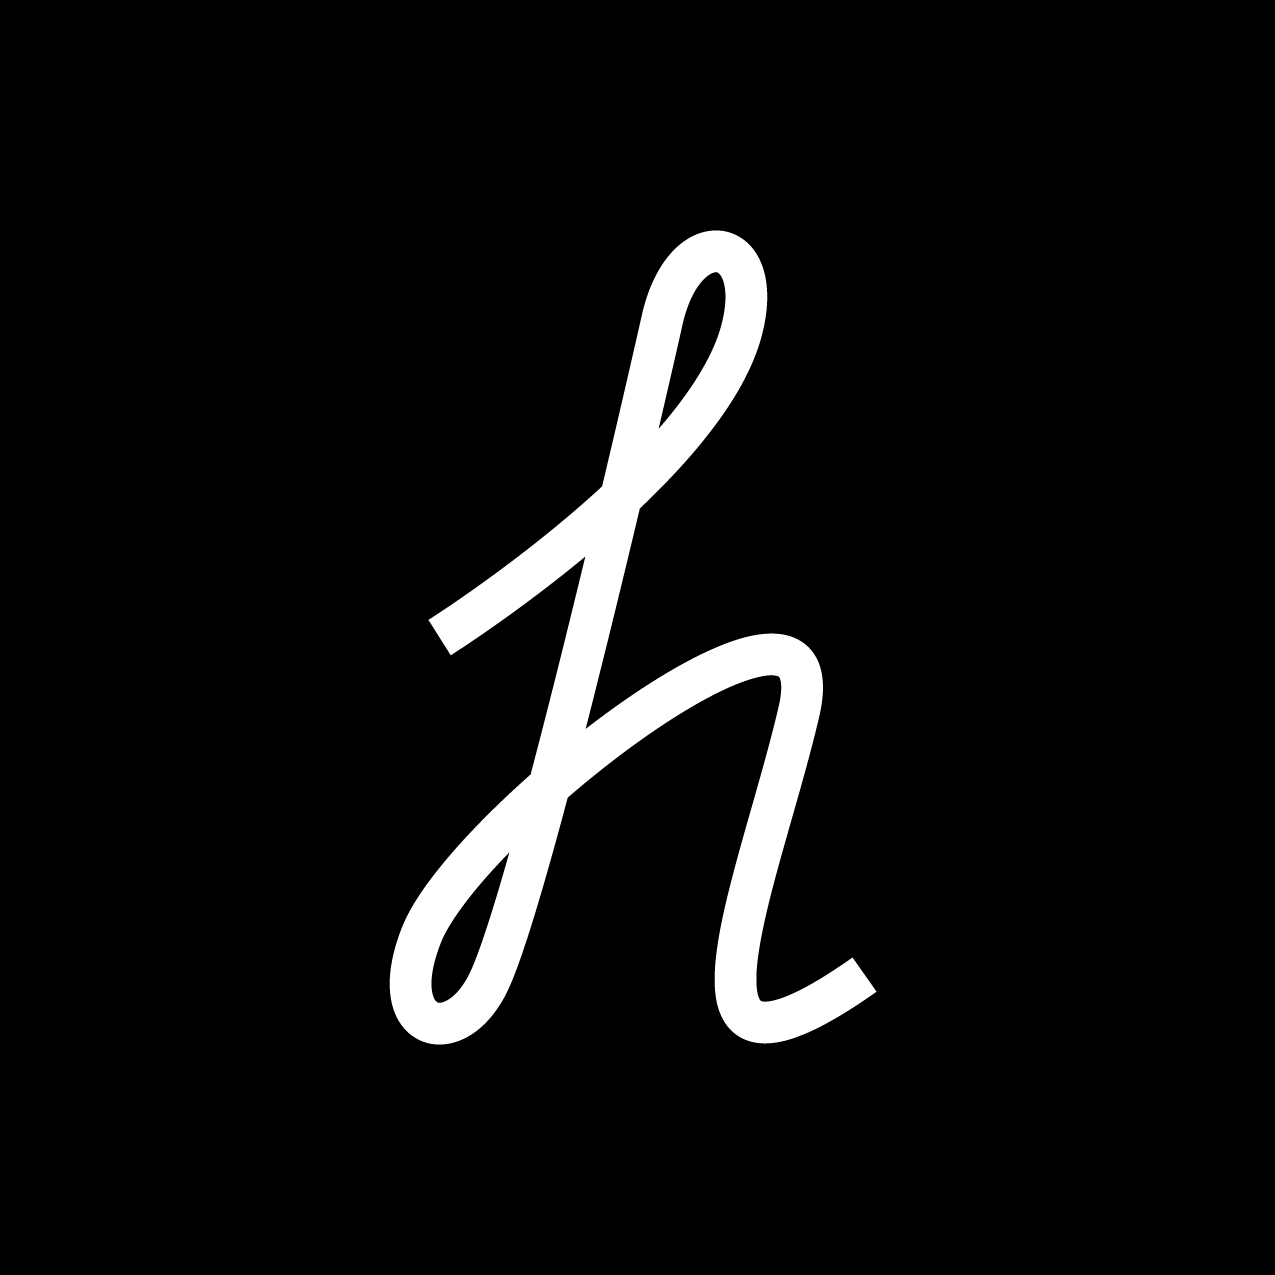 Letter H6 Design by Furia